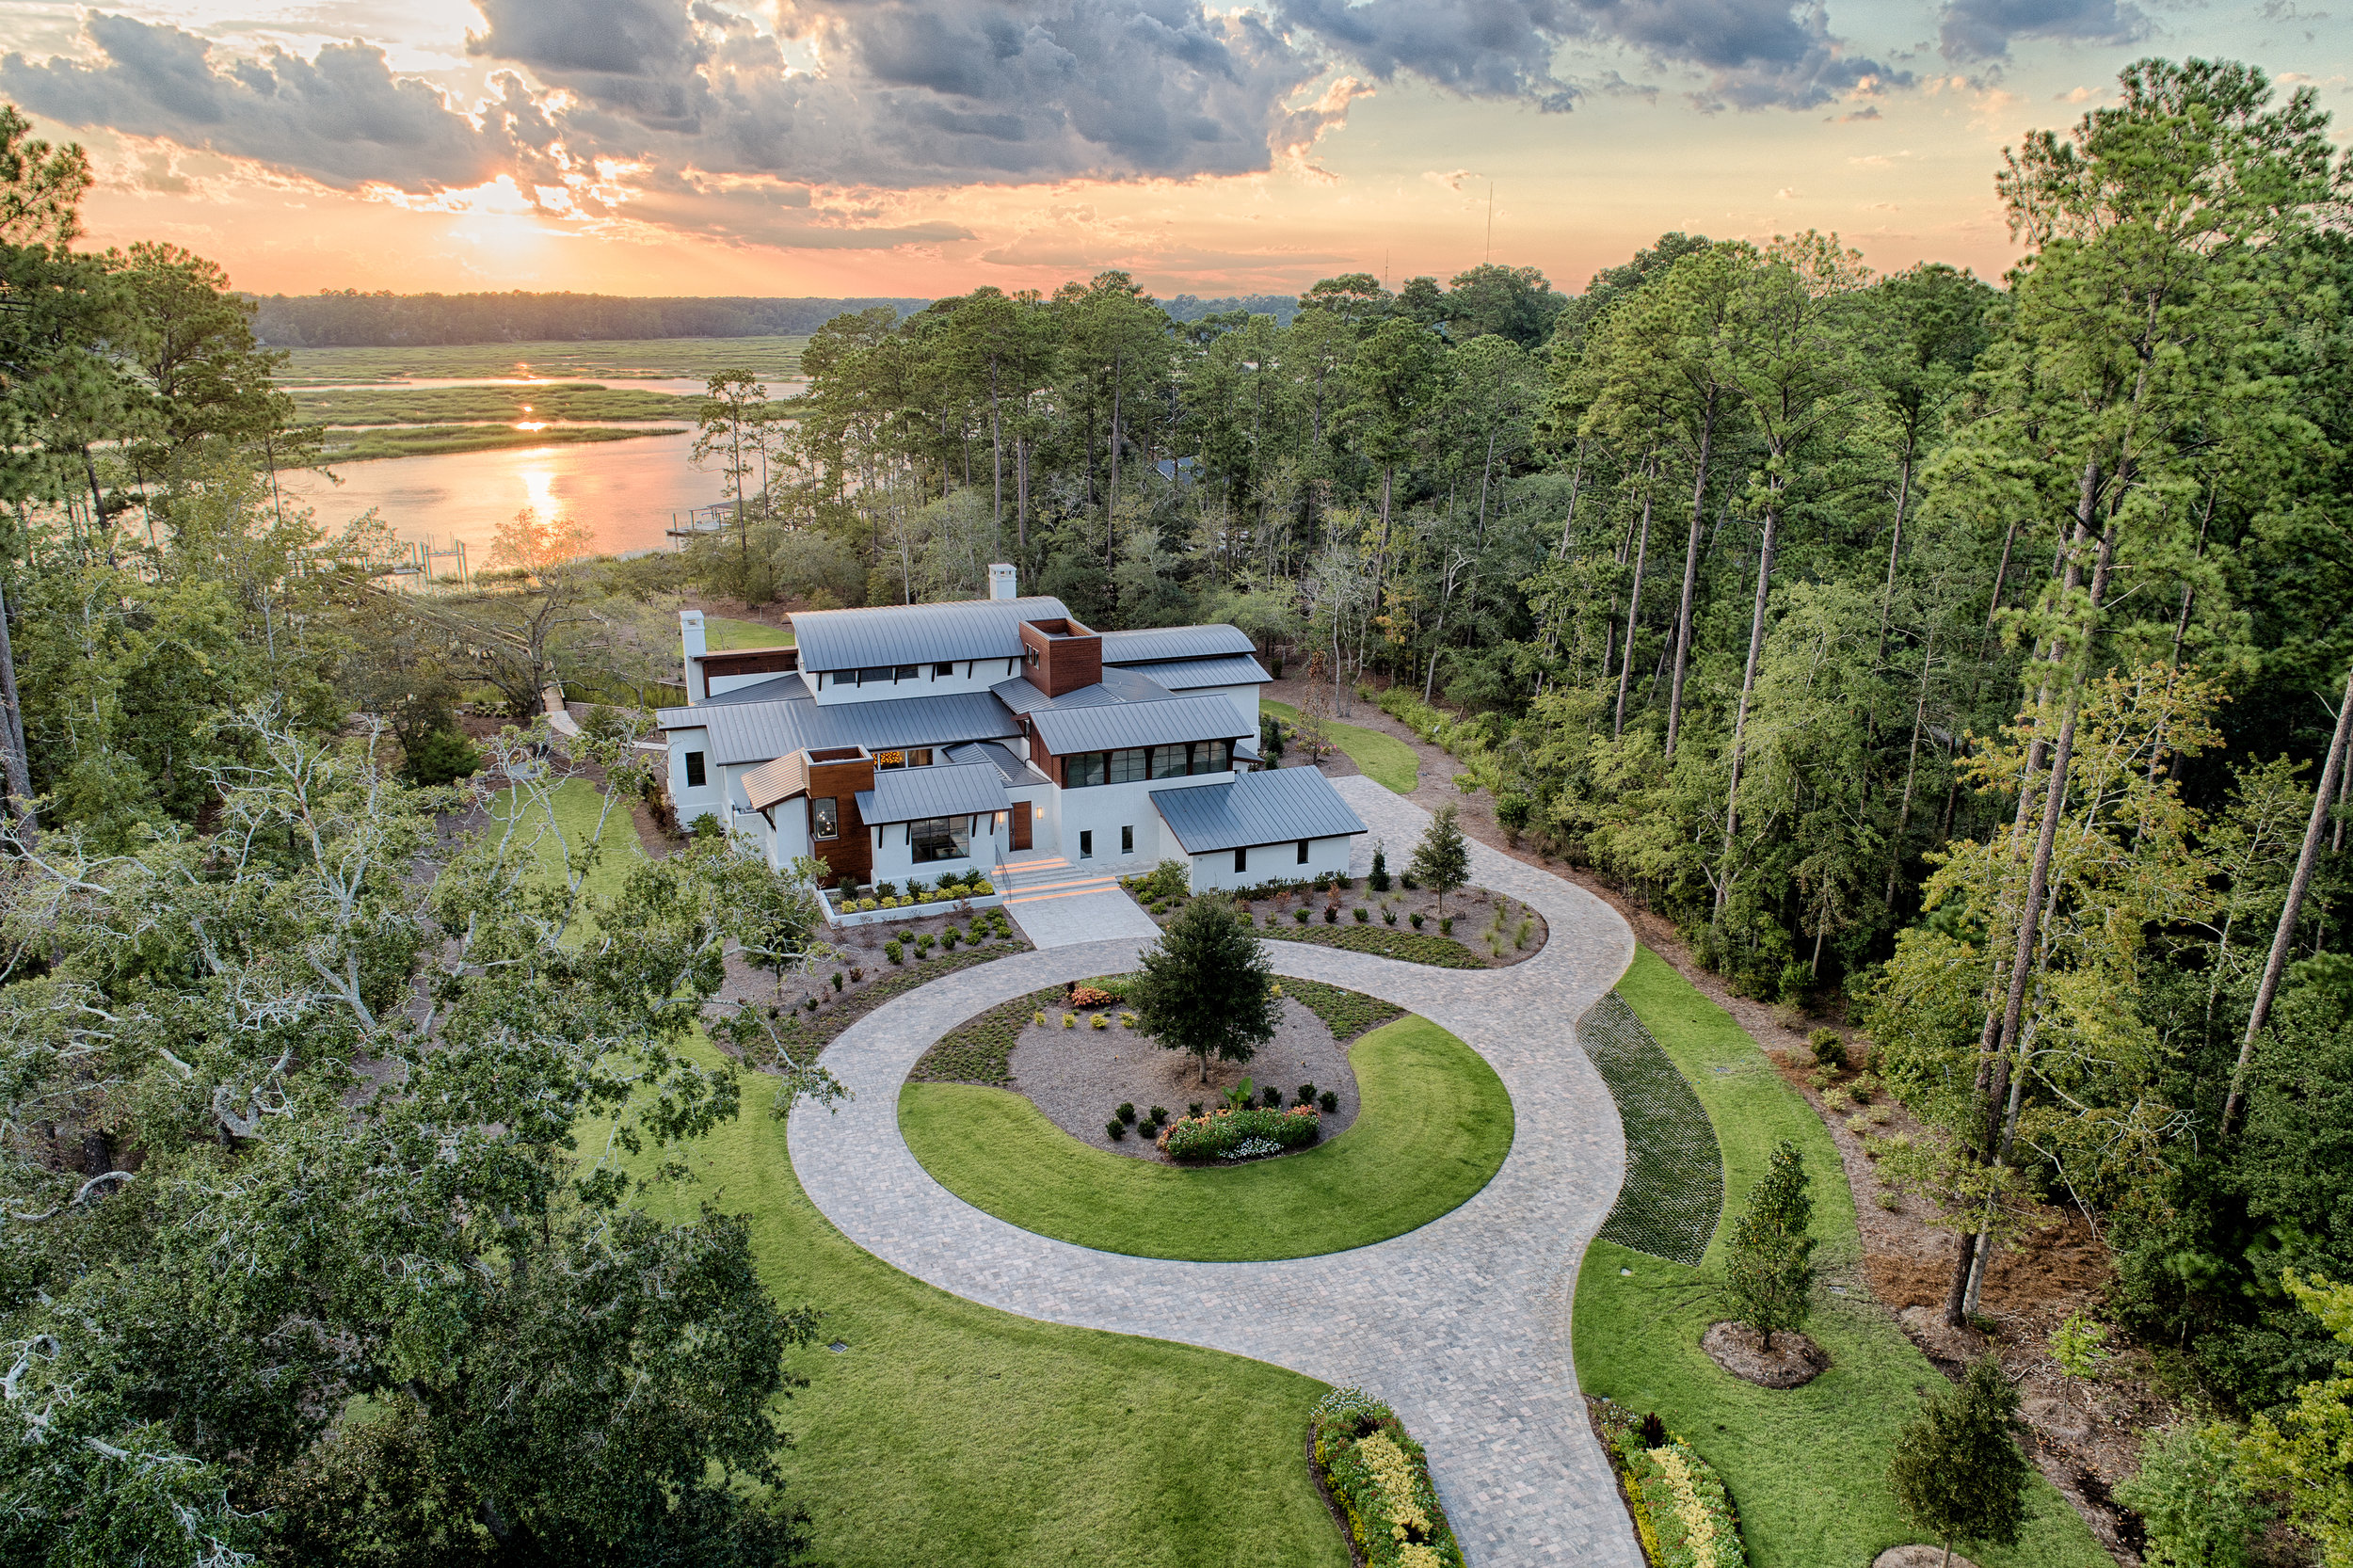 Berkeley Hall Plantation - Installed by: American Paving Design (2018)